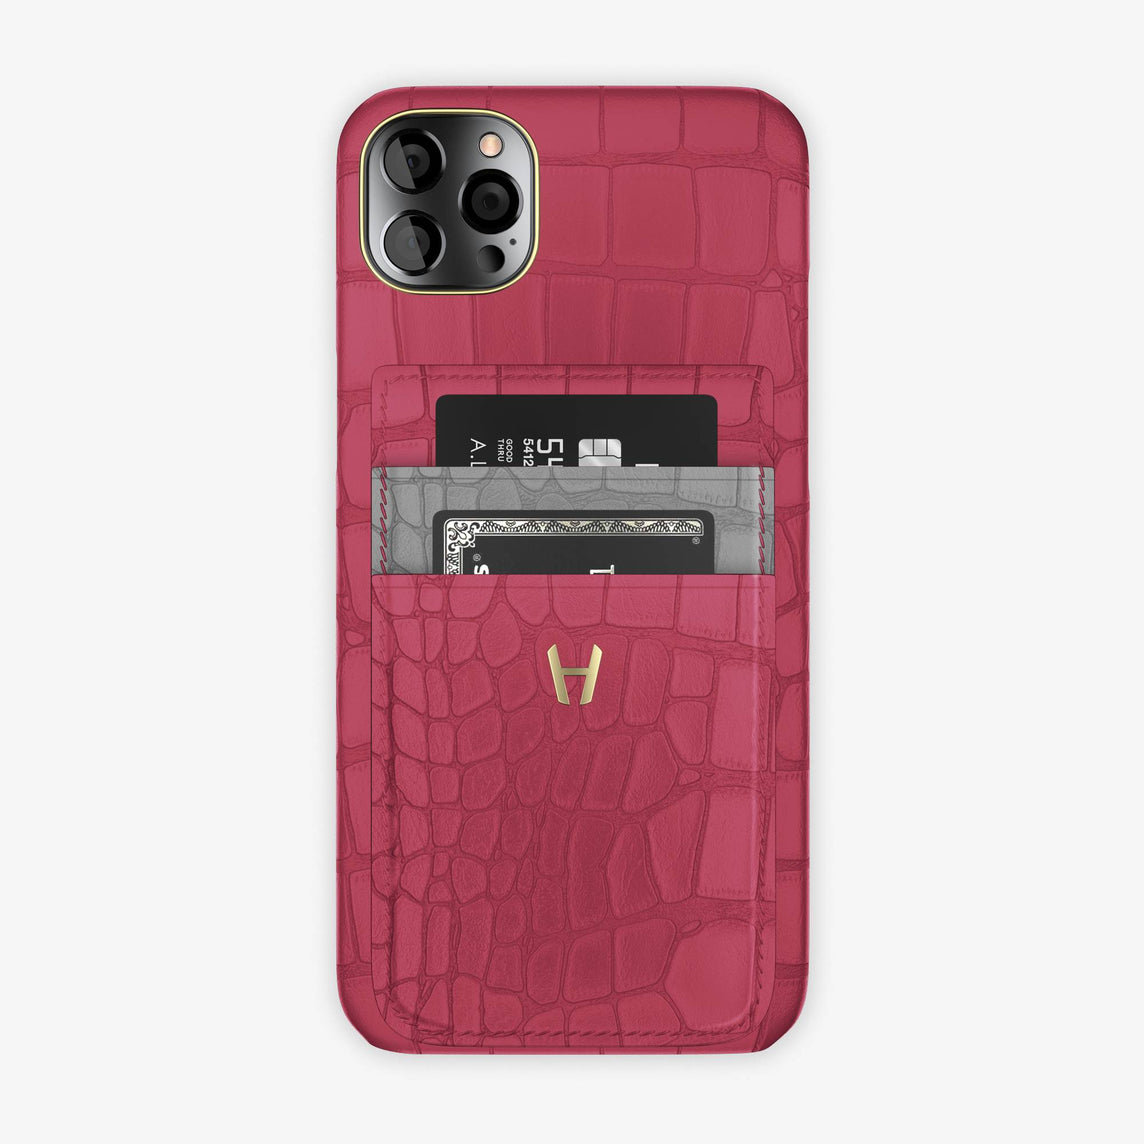 Alligator Pocket Case iPhone 12 Pro Max | Pink Girly/Silver - Yellow Gold